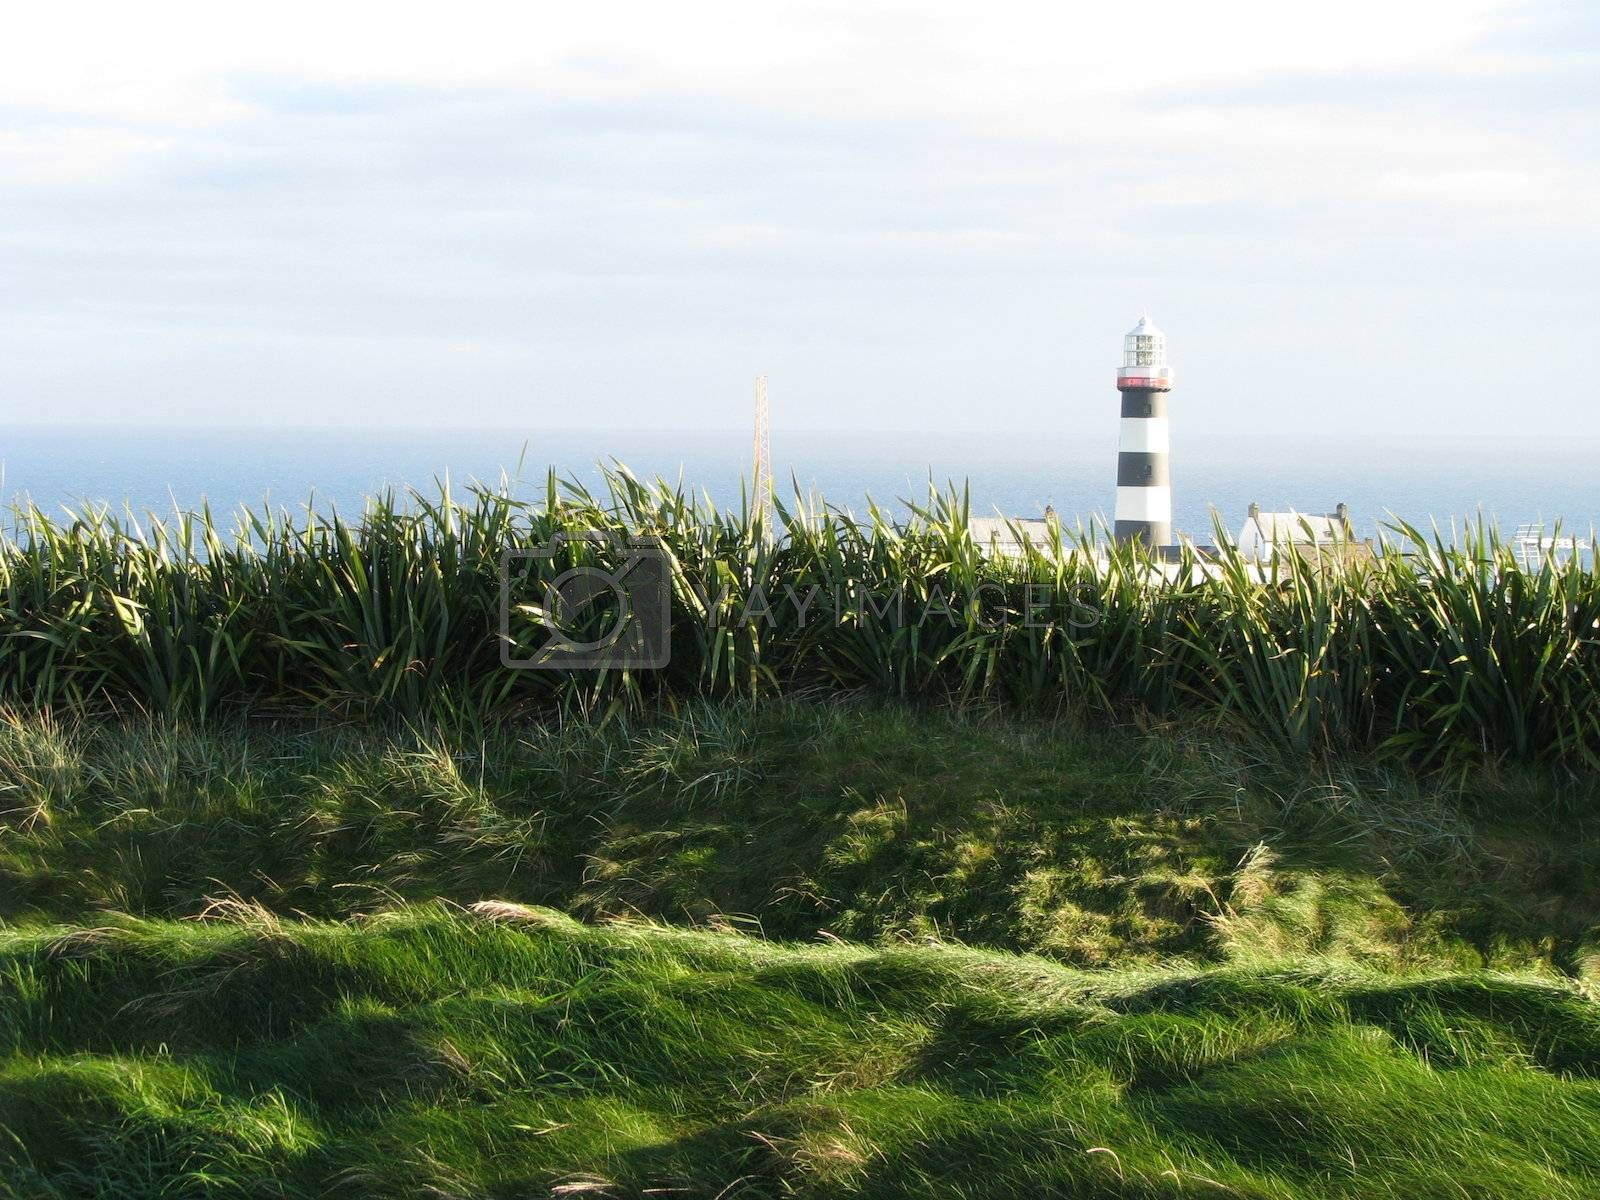 Royalty free image of LightHouse by ewilliamsdesign